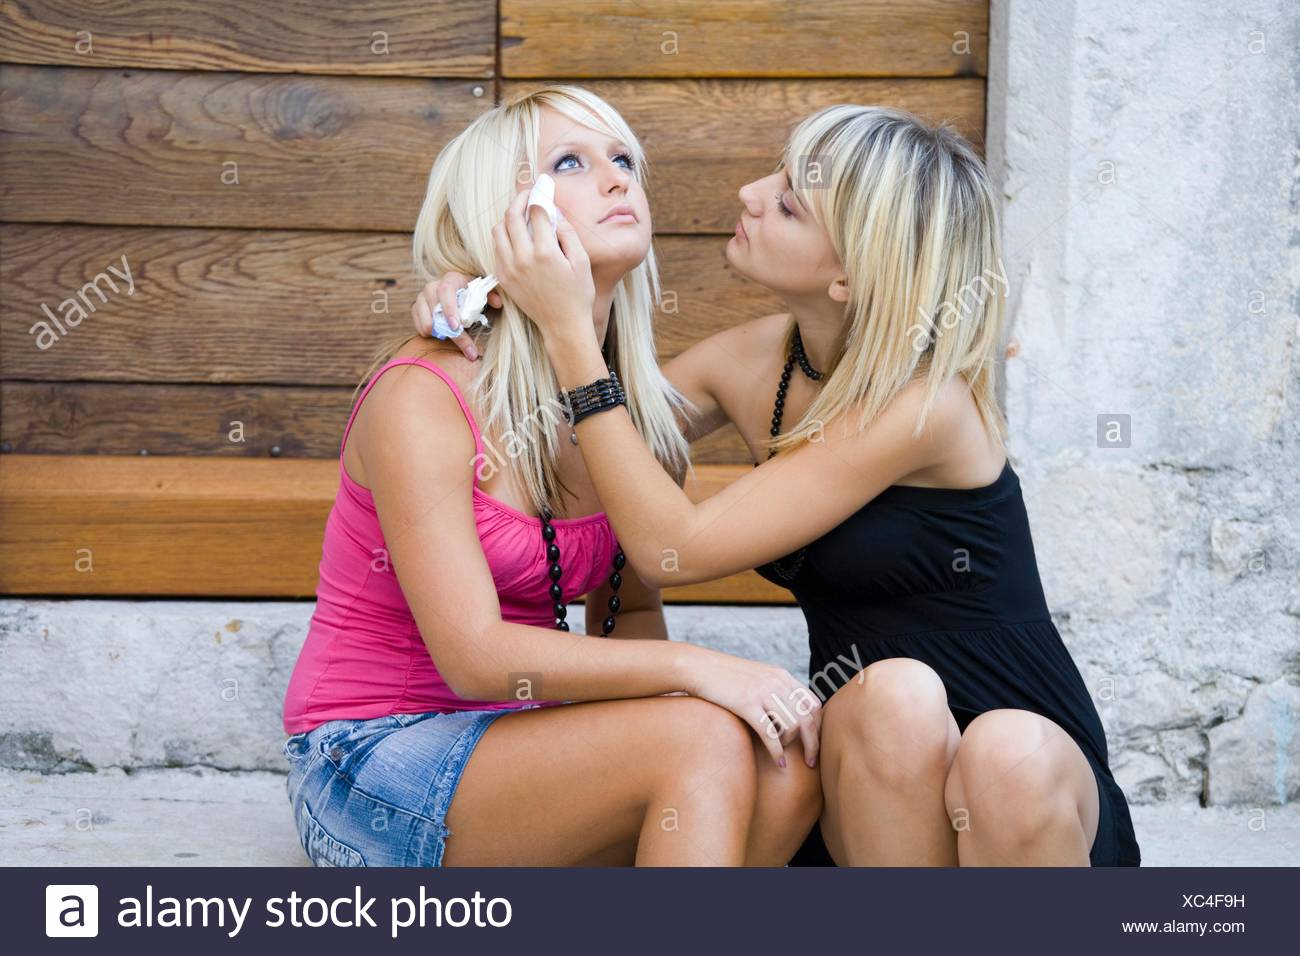 Two young women together, one is crying - Stock Image